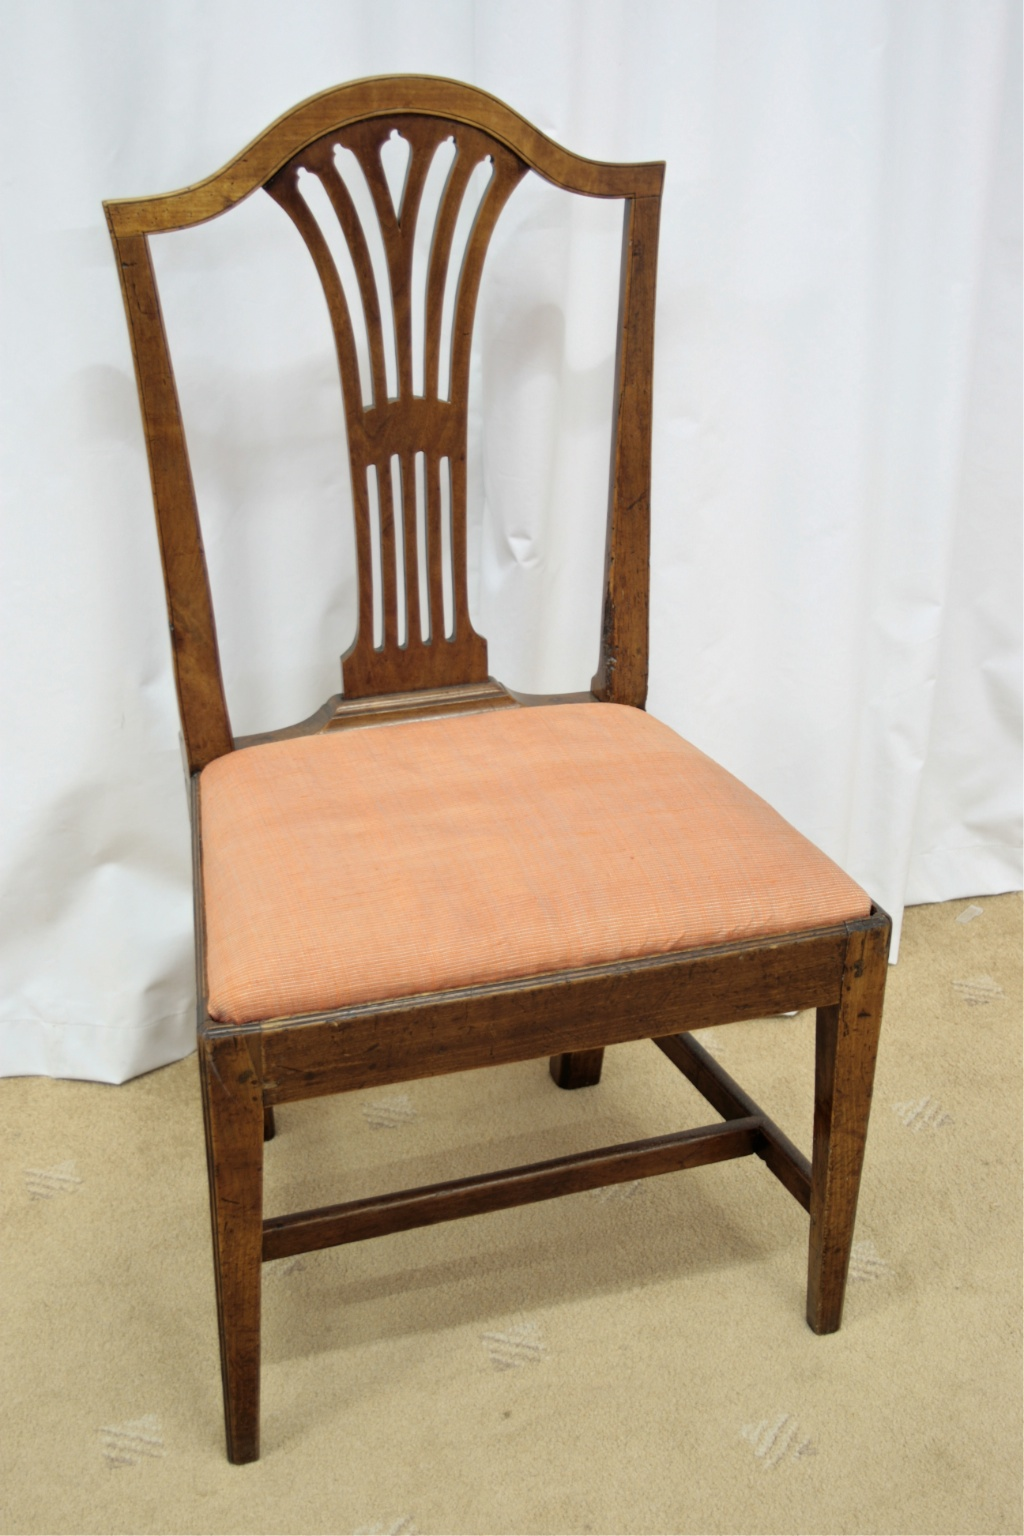 Six Georgian Mahogany Dining Chairs For Sale | Antiques ...